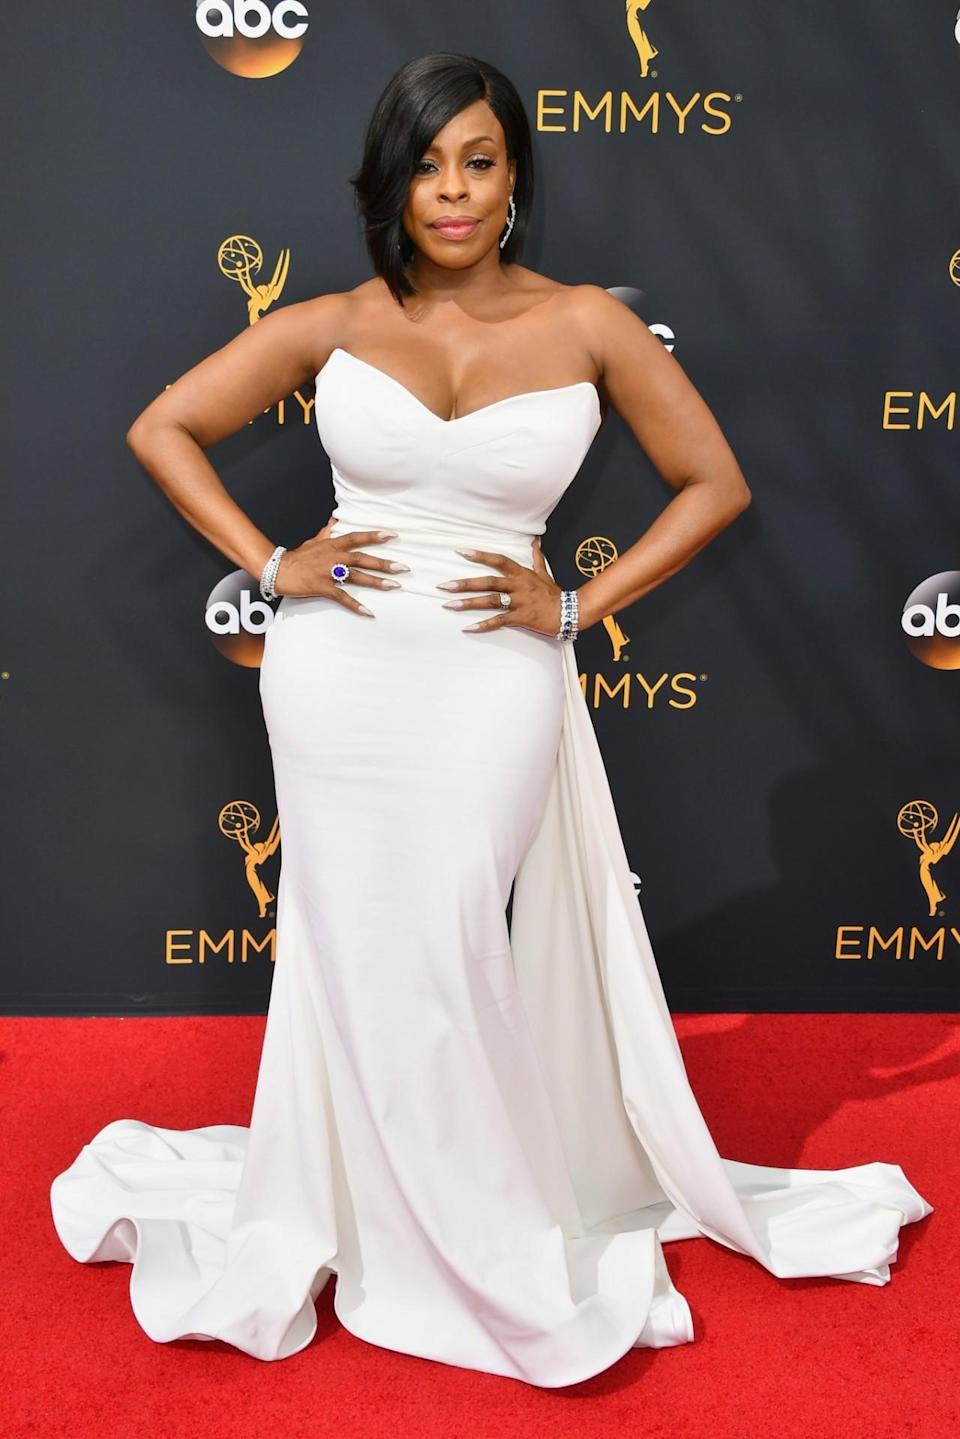 <p>Niecy Nash worked a custom piece from the designer that fit her like a glove. The strapless number also featured a train for some extra flair. <em>(Photo: Getty Images)</em></p>